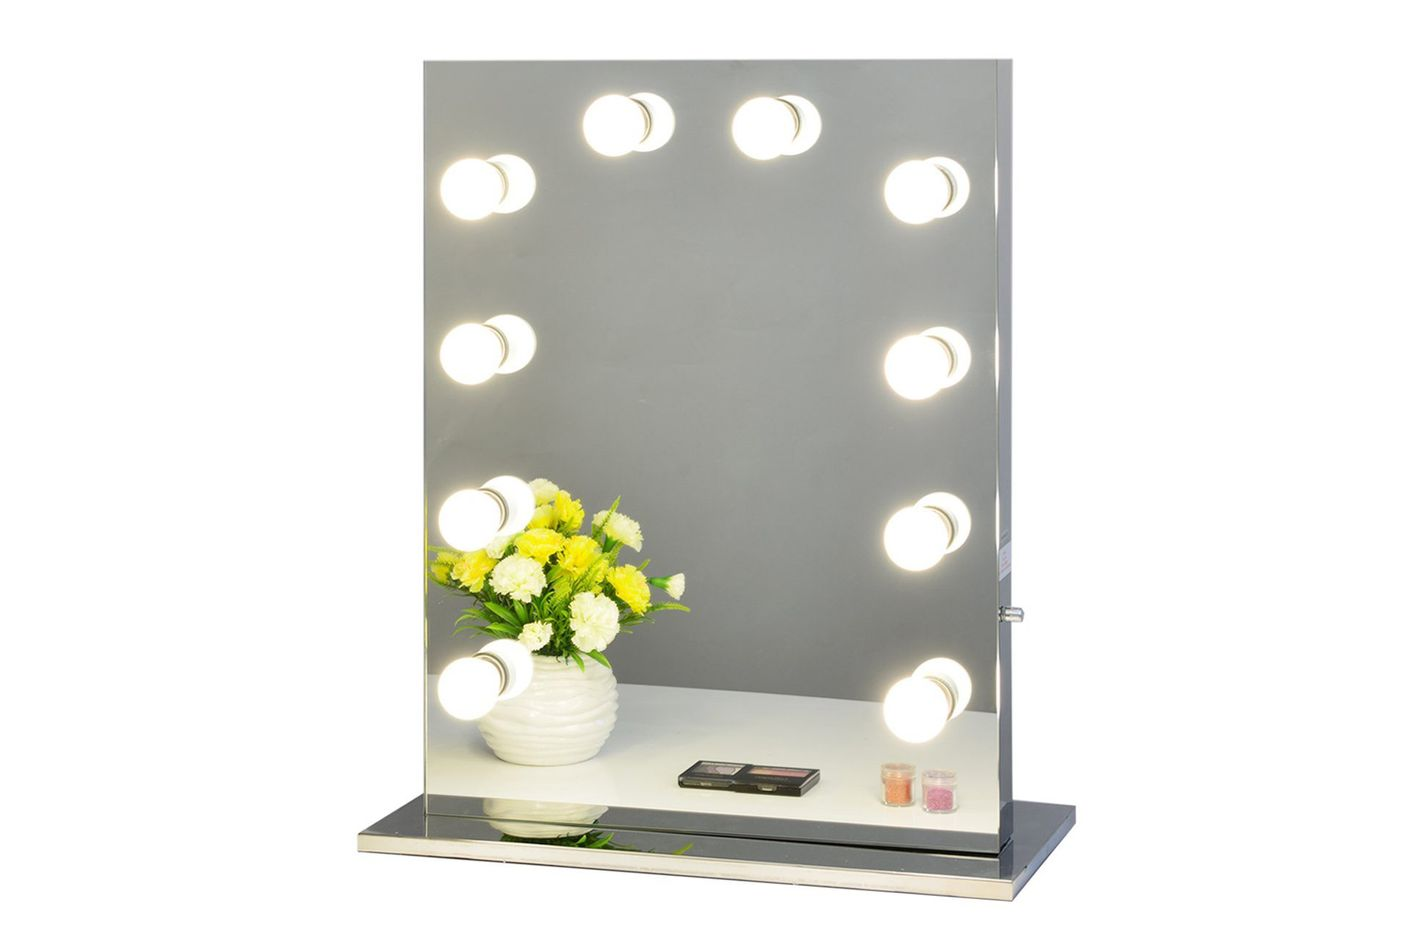 Chende Frameless Hollywood Tabletops Lighted Makeup Vanity Mirror